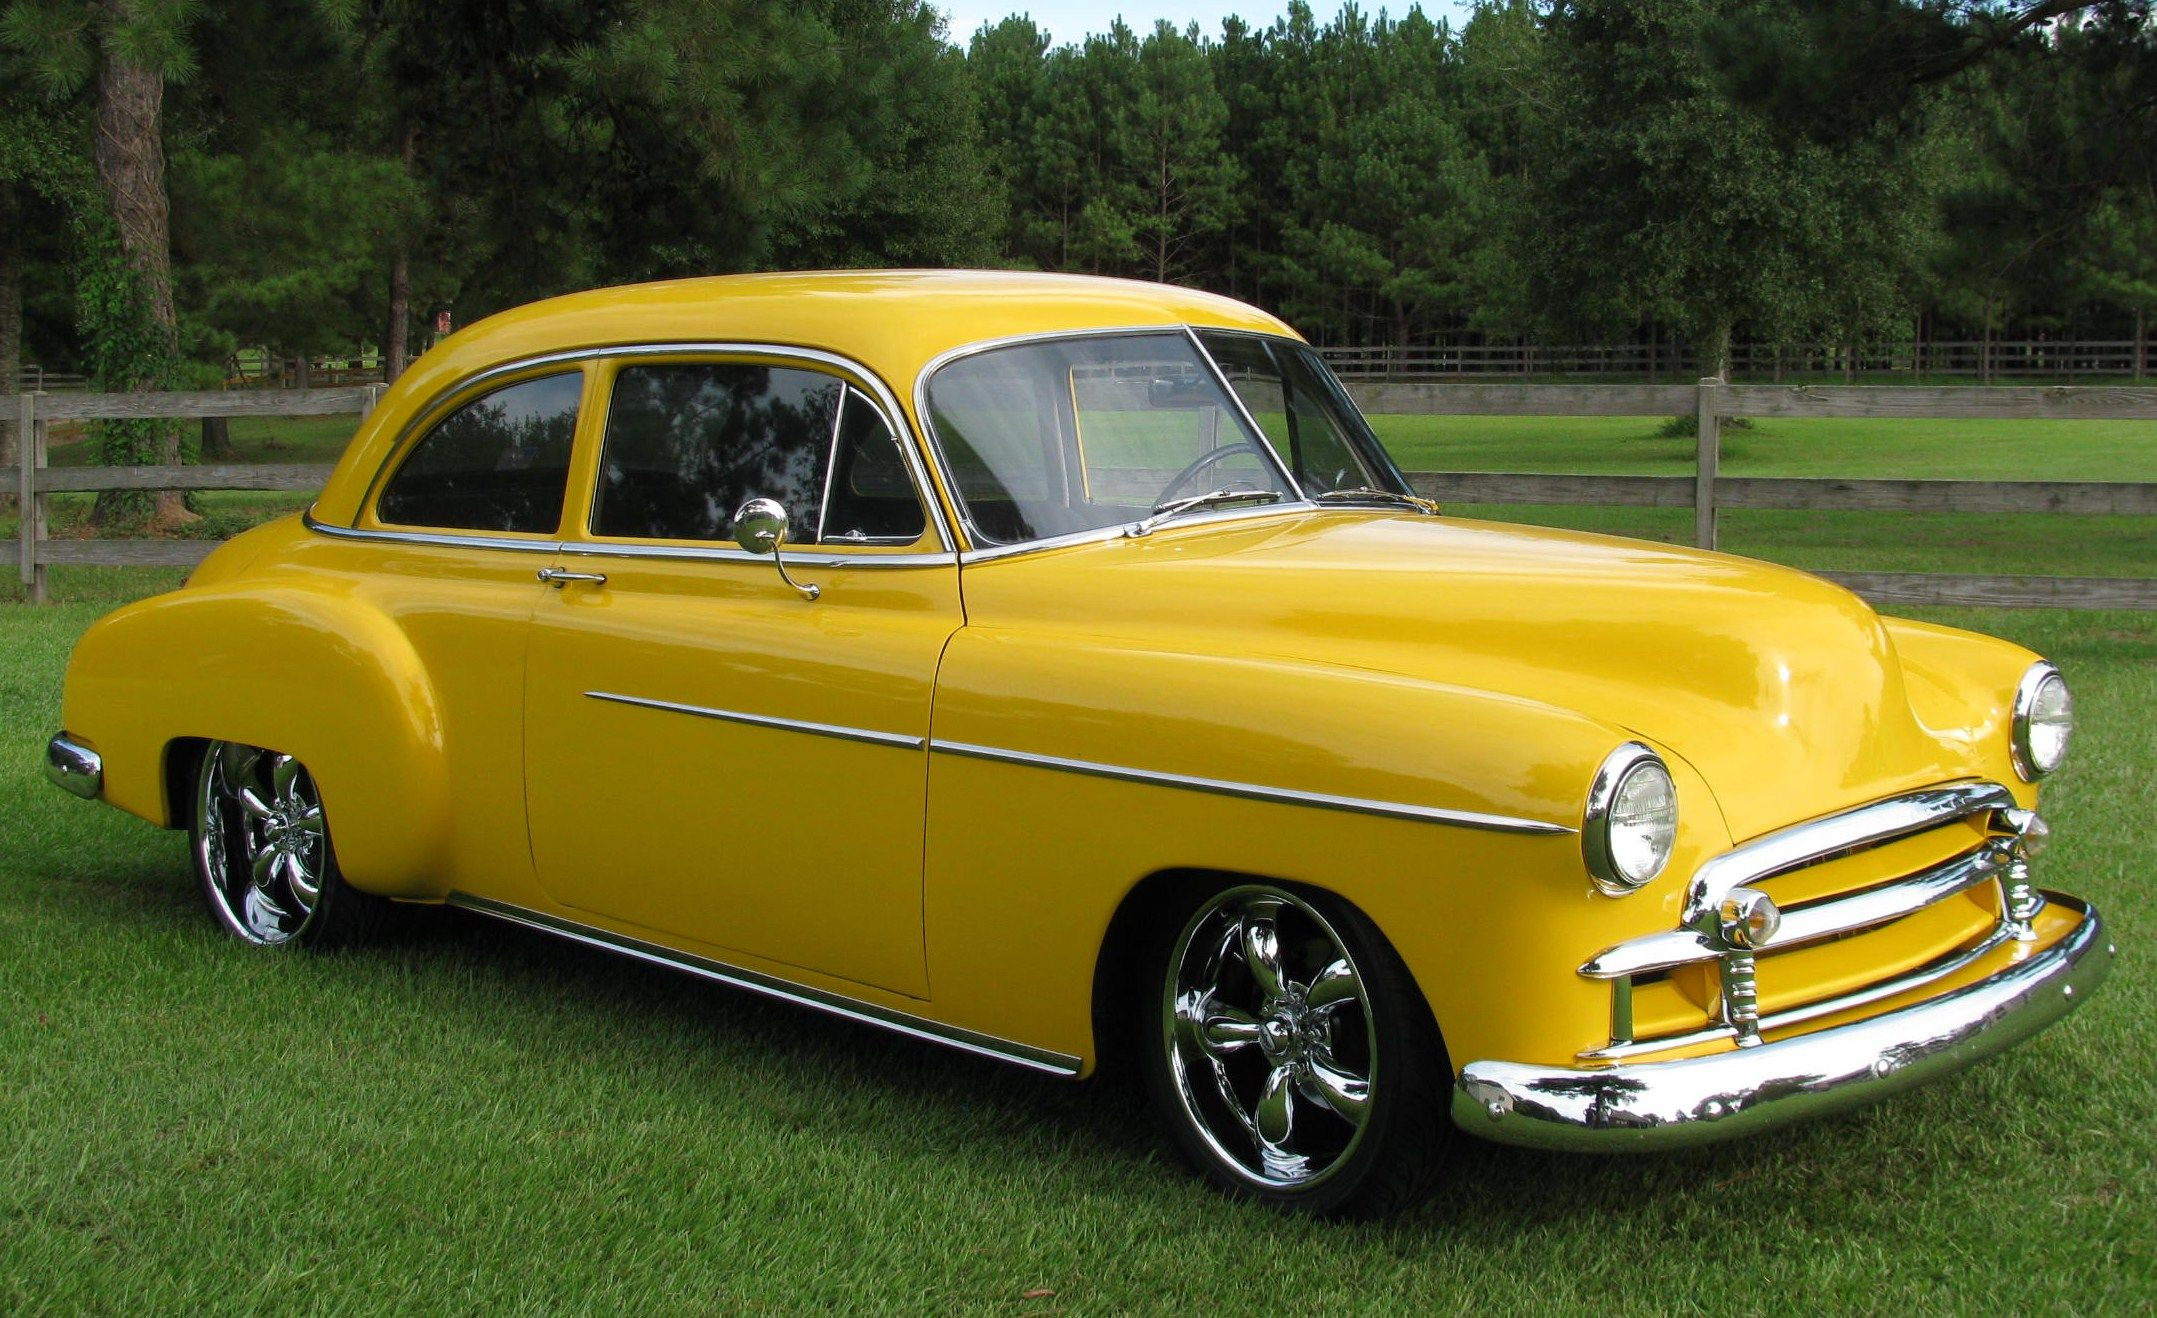 1950 Chevy Deluxe Maintenance restoration of old vintage vehicles